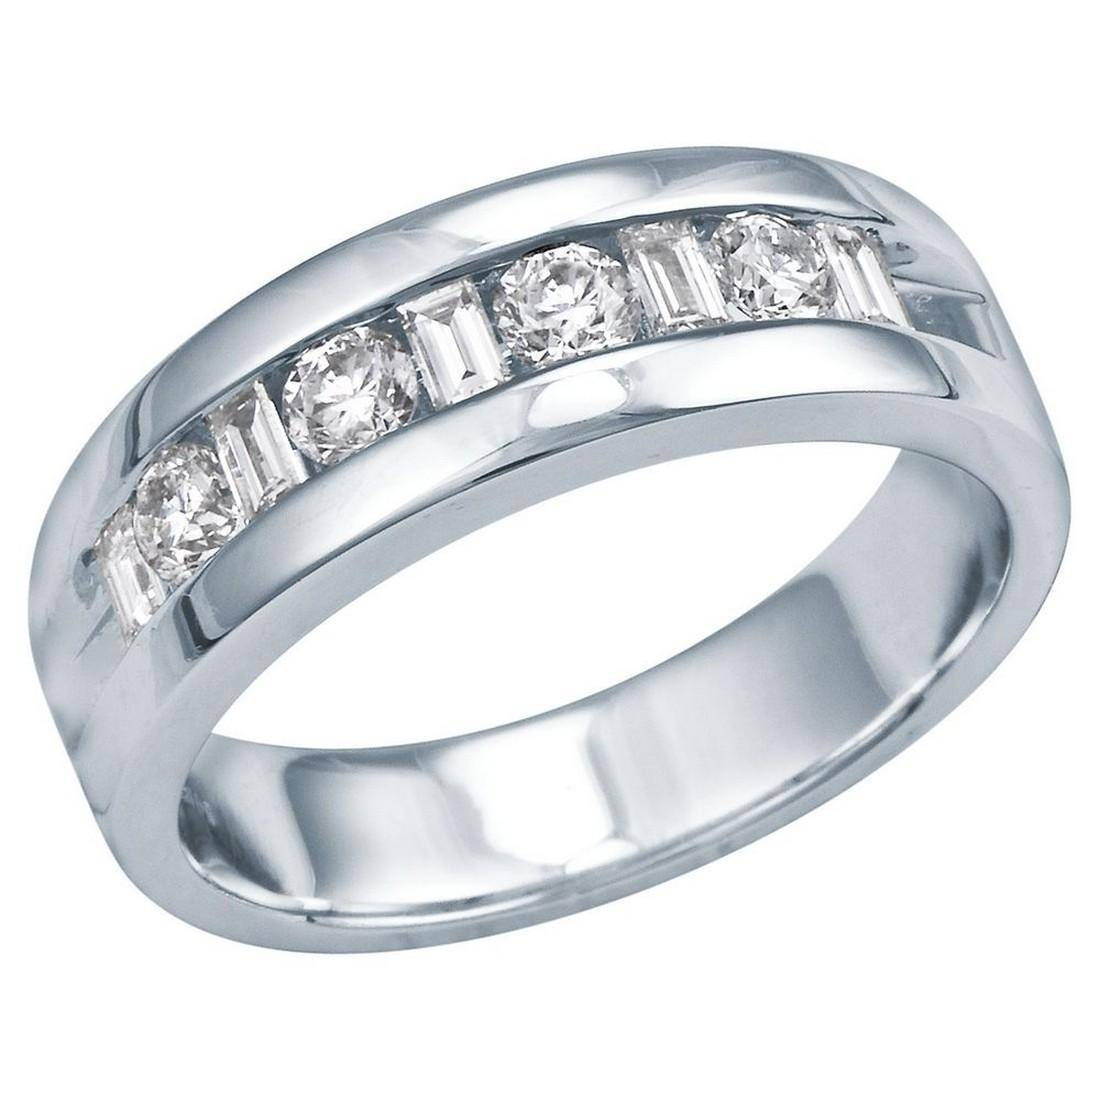 Zales Engagement Rings For Men 1 – Ifec Ci Throughout Zales Mens Engagement Rings (View 15 of 15)